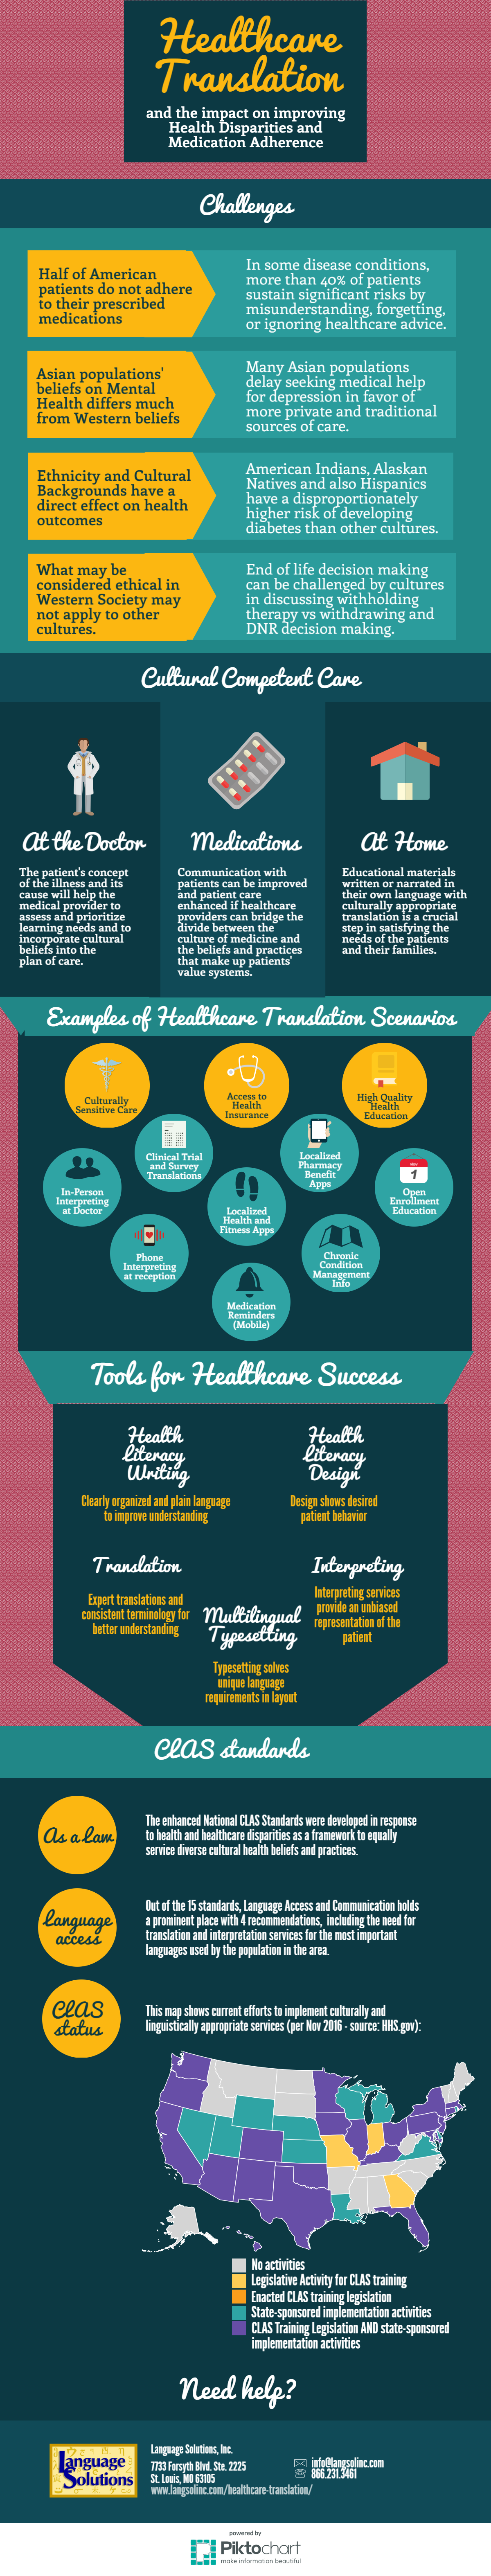 infographic on healthcare translation and health disparities